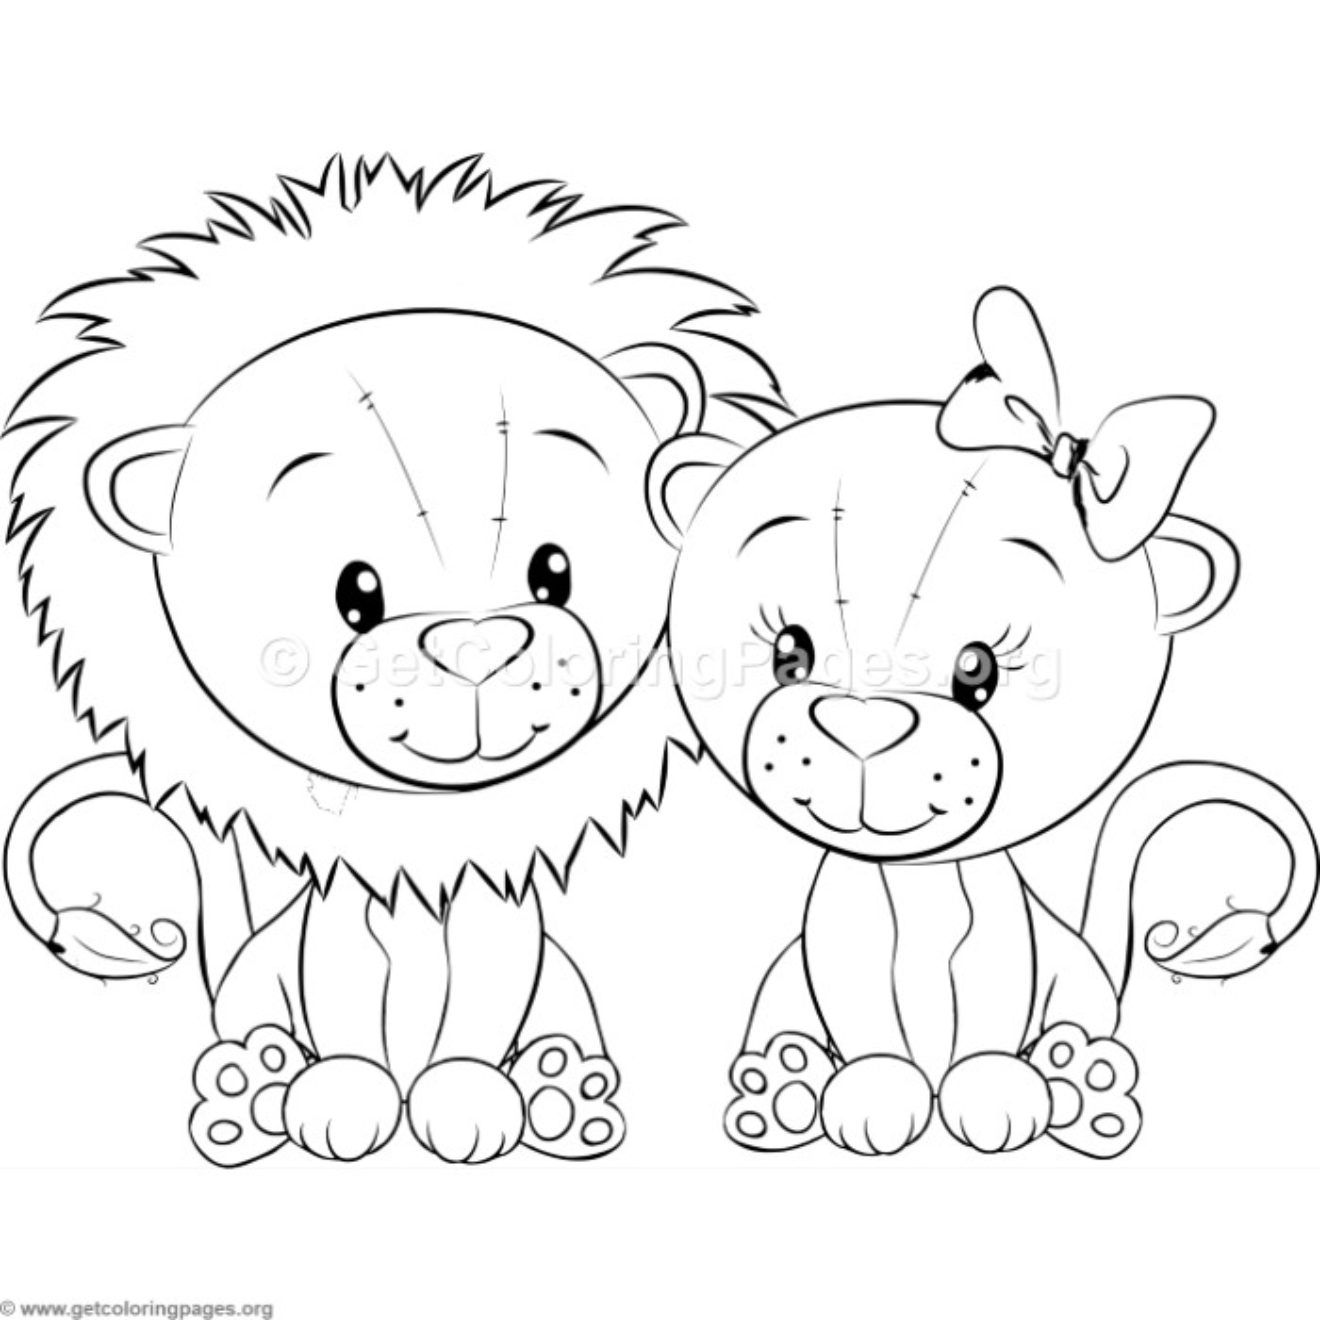 Little Lion 2 Coloring Pages Cute Coloring Pages Cool Coloring Pages Elephant Coloring Page